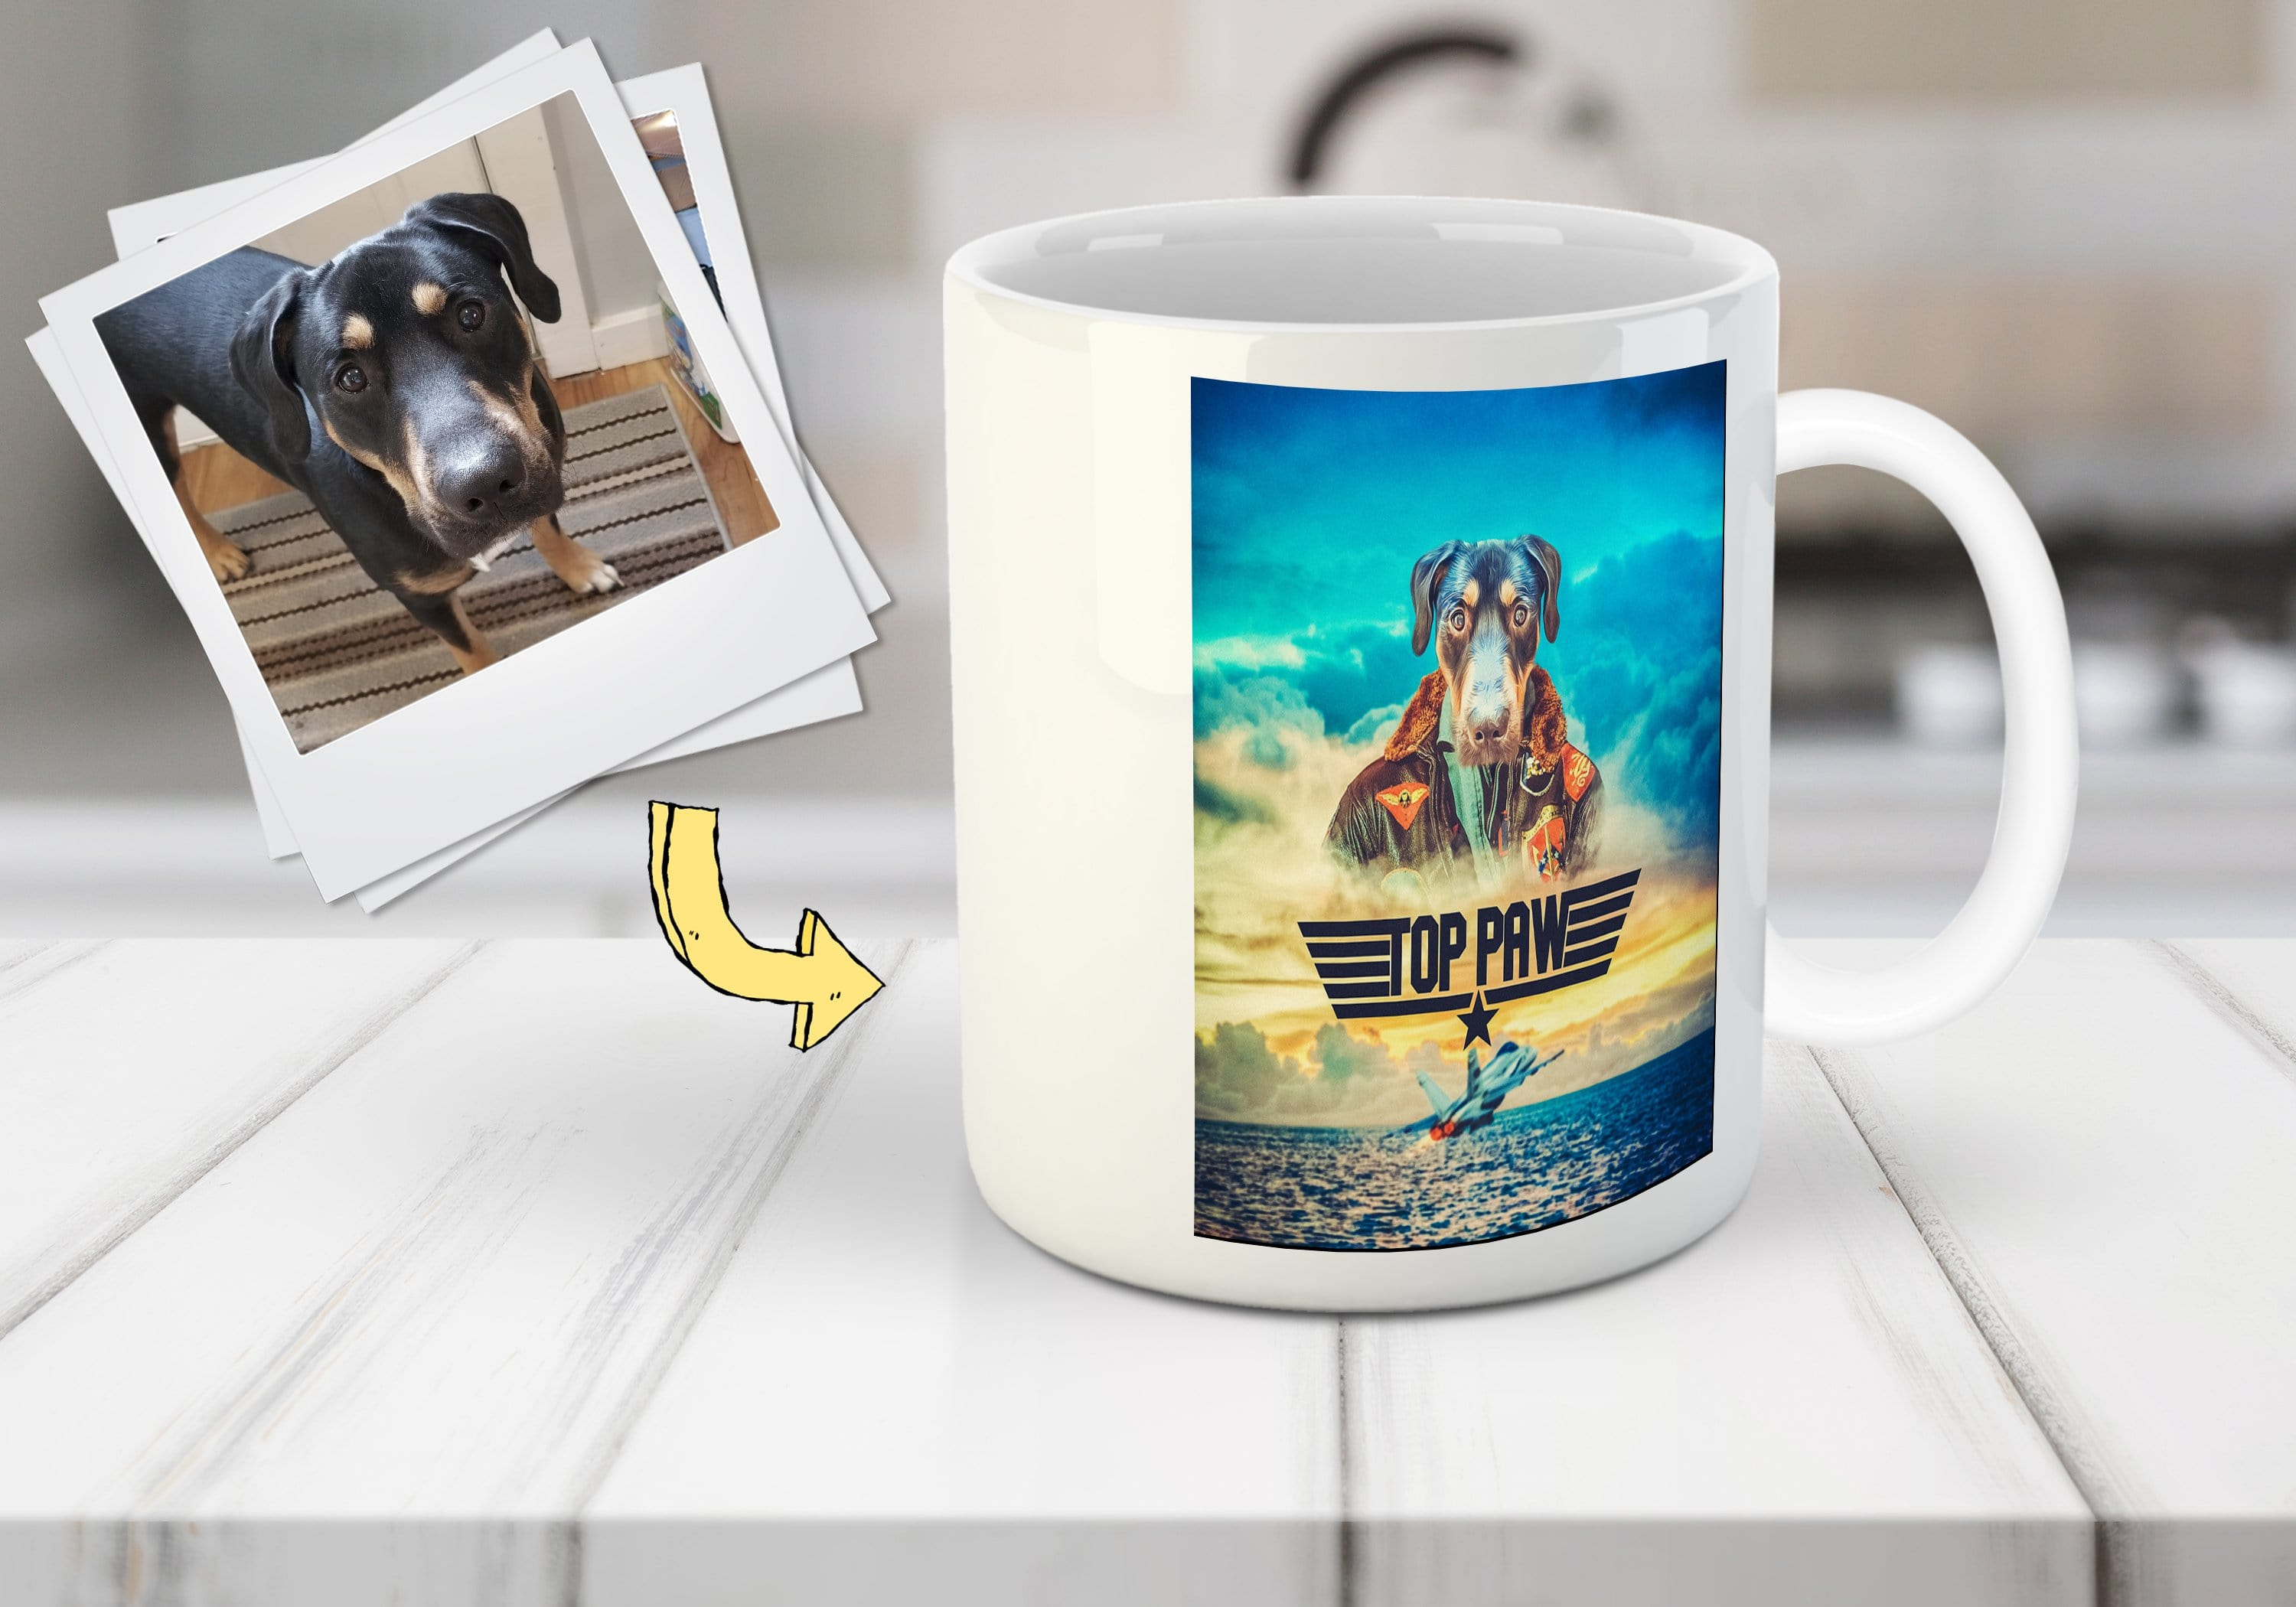 Top Paw: Personalized Mug